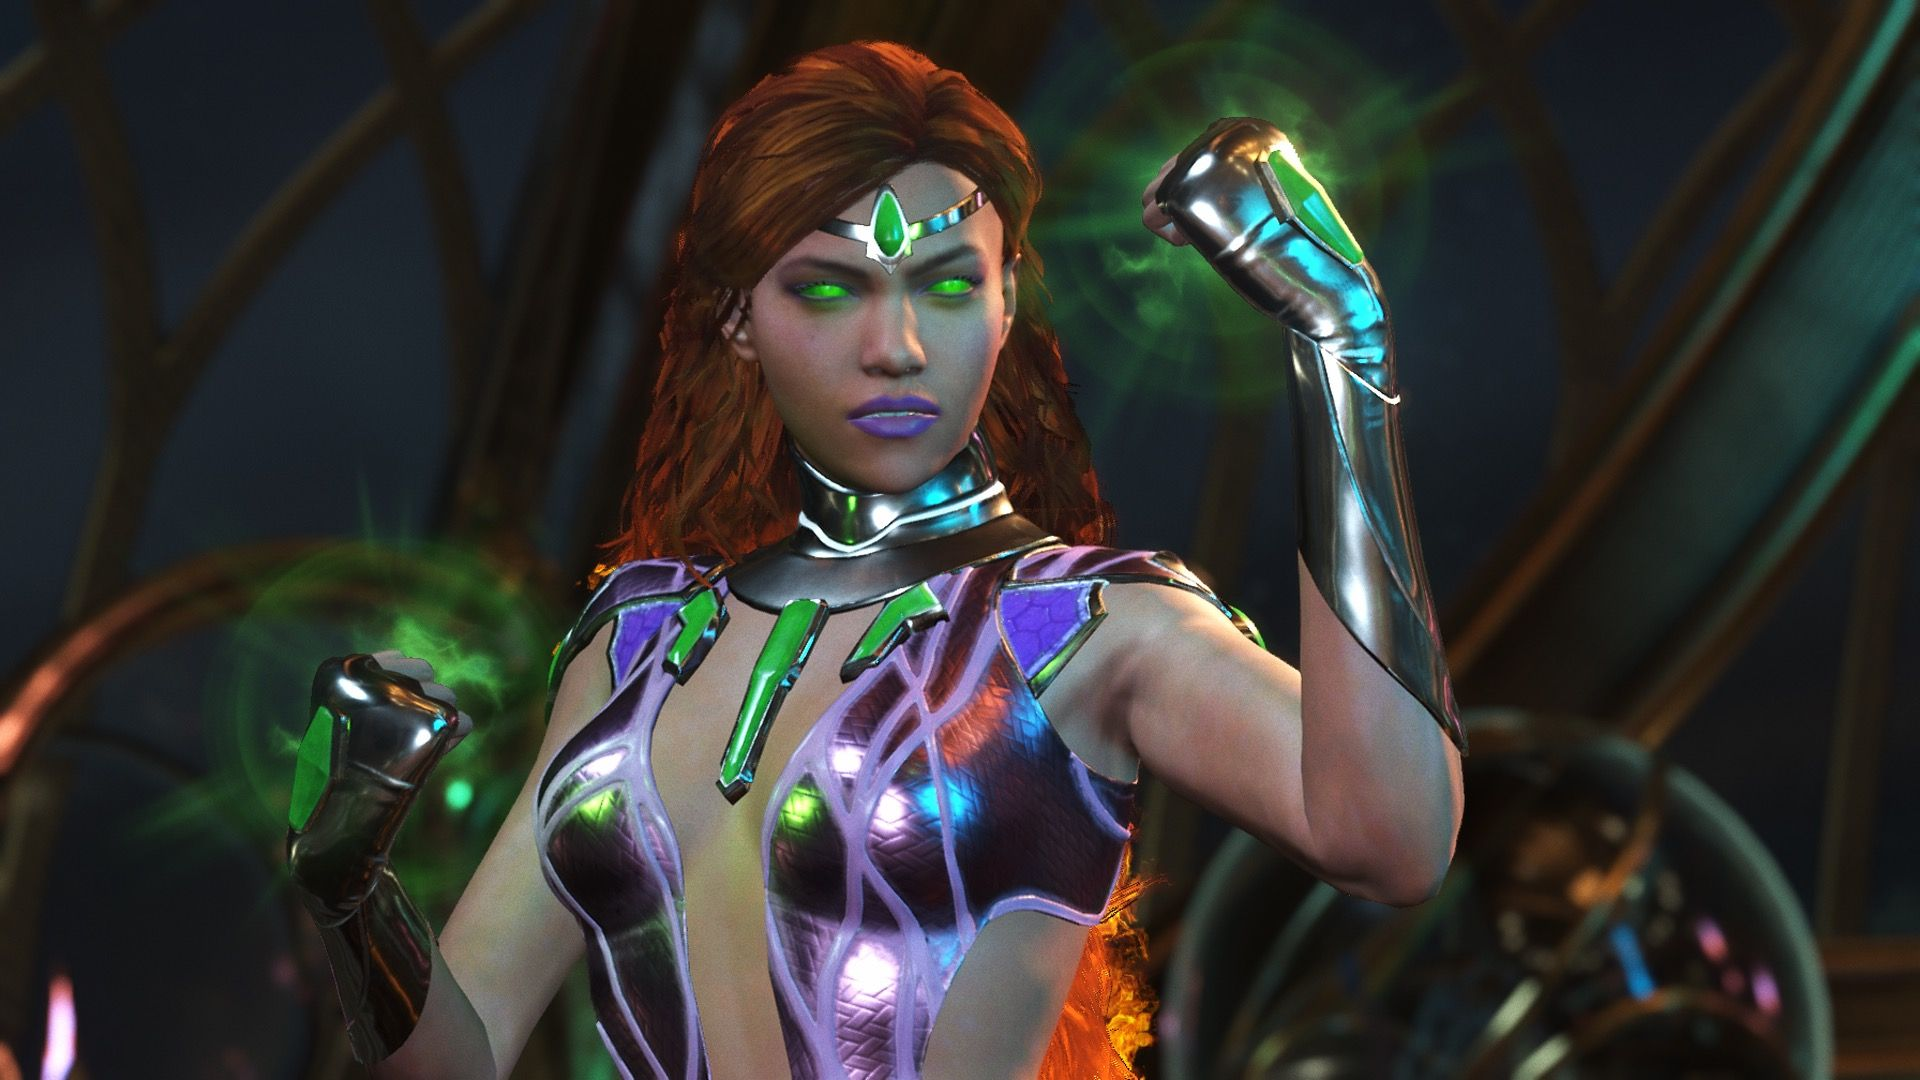 Starfire Injustice 2 So Impressed With The Designs For These Injustice 2 Characters Each Person Looks So Injustice 2 Characters Favorite Character Starfire